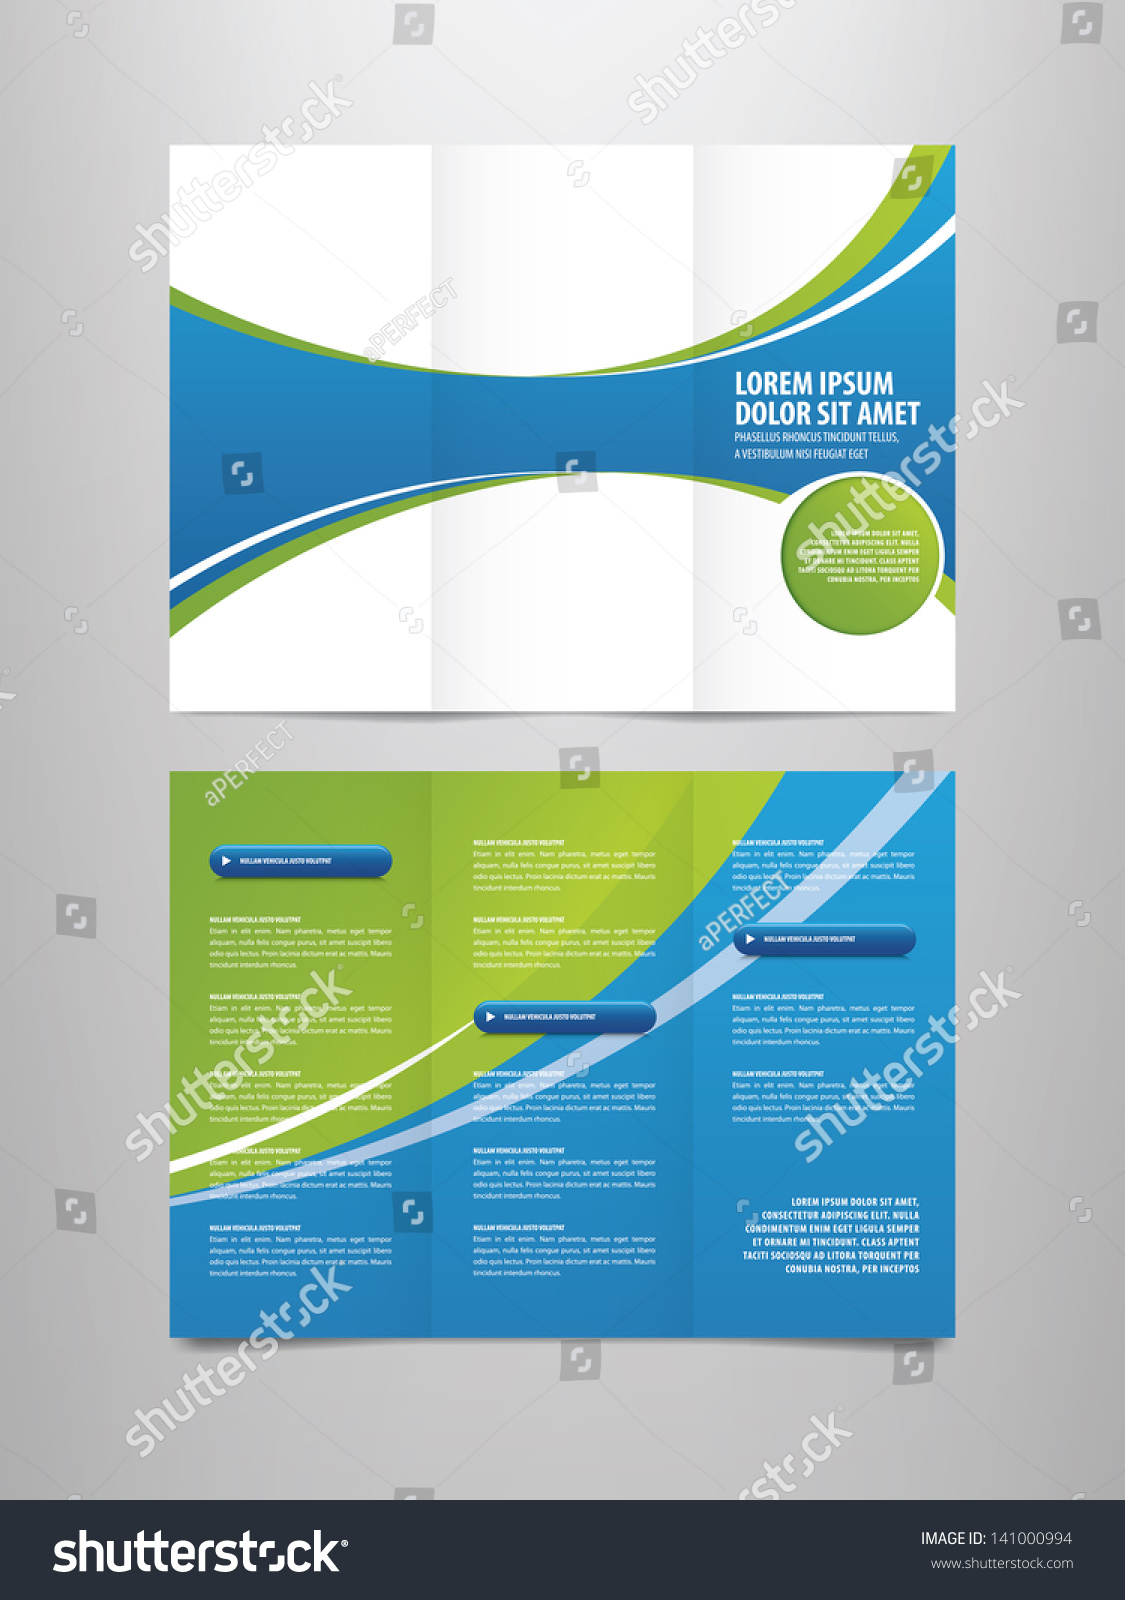 tri fold business brochure template - tri fold business brochure template stock vector 141000994